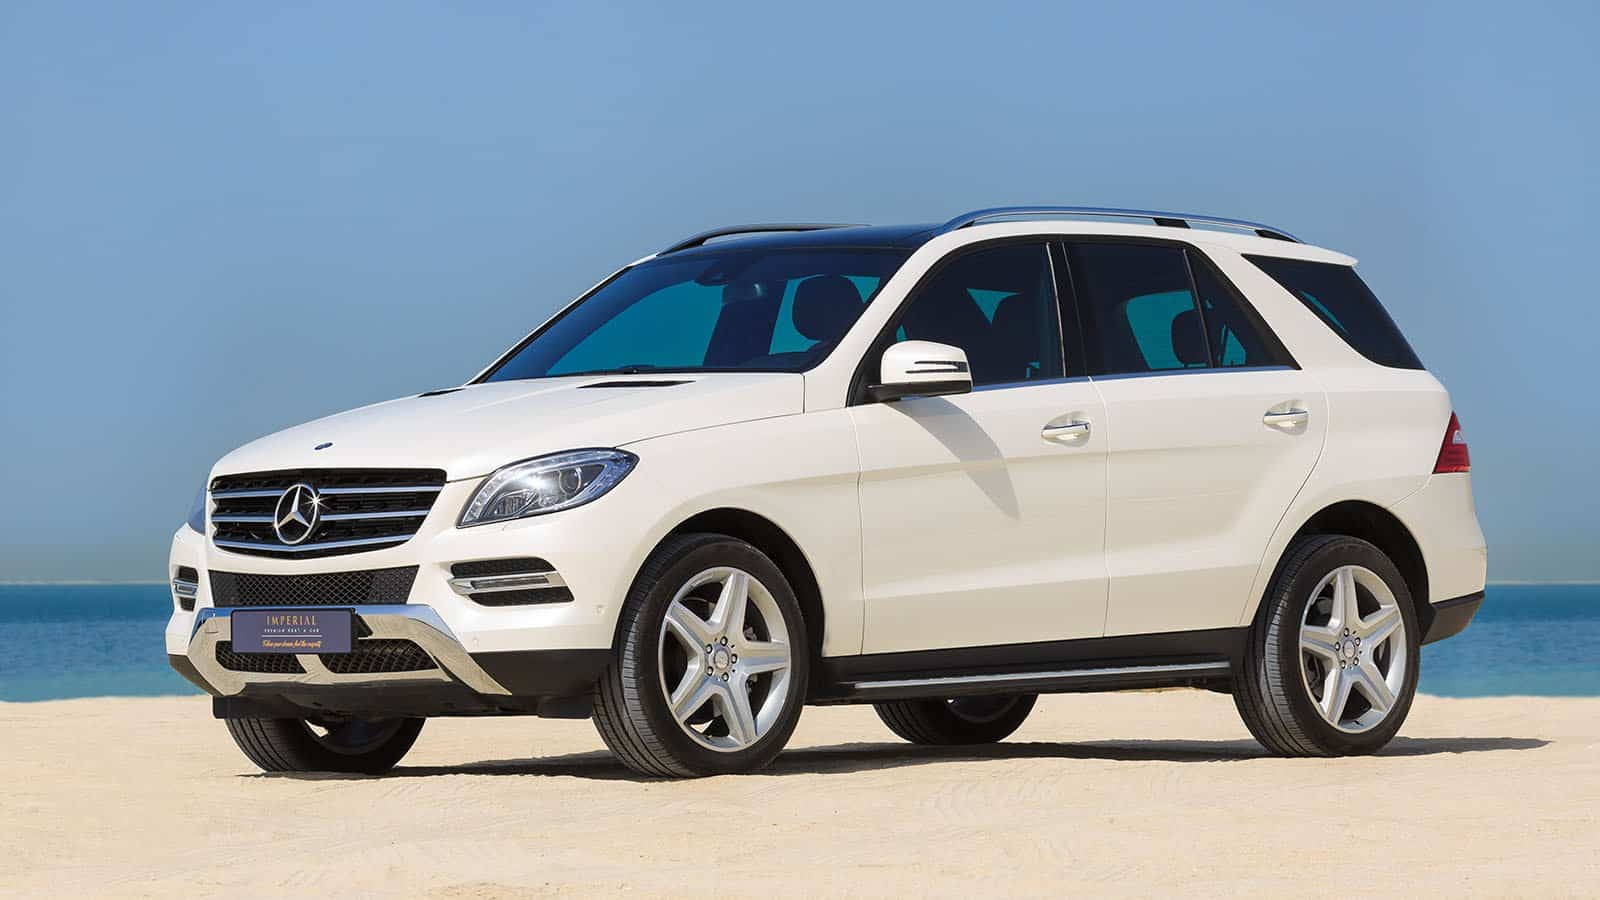 Mercedes Ml350 Diesel >> 2013 Mercedes Benz Ml350 | Upcomingcarshq.com